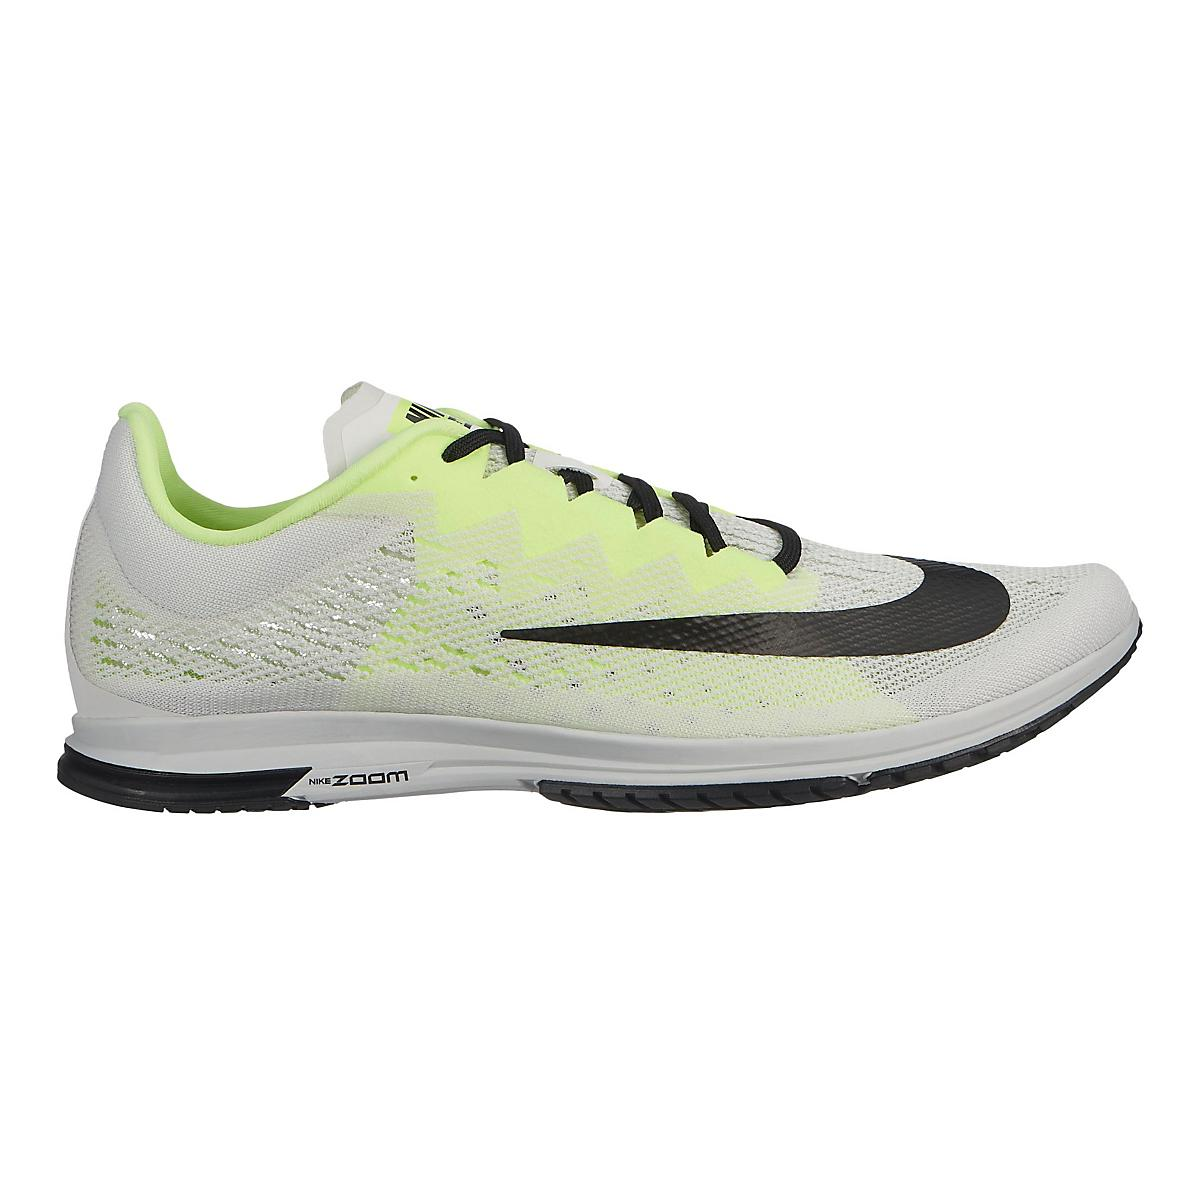 d6660e3ee437 Nike Zoom Streak LT 4 Racing Shoe at Road Runner Sports